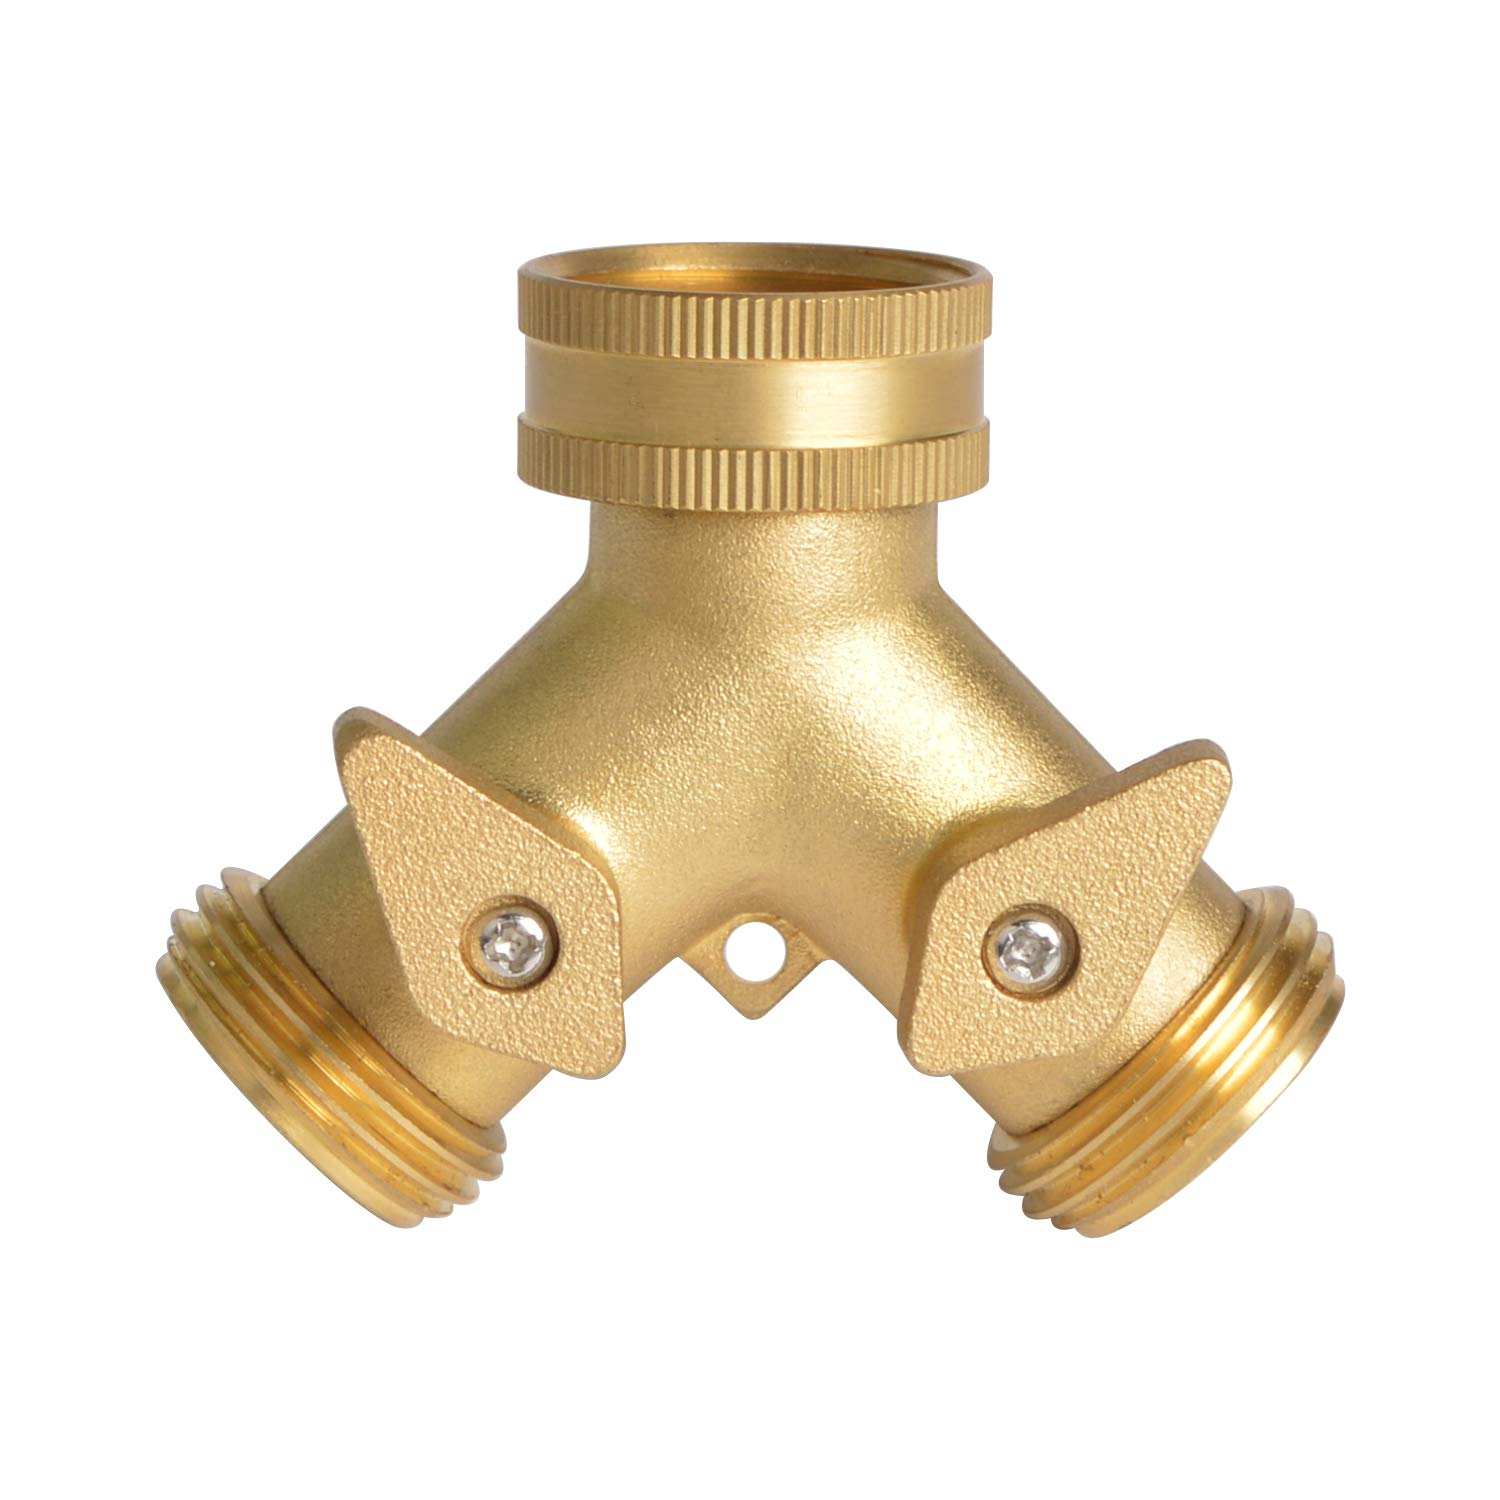 HYDRO MASTER 0710401L 2 Way Garden Hose Splitter, Hose Connector, Heady Duty Solid Brass Shut Off Valve